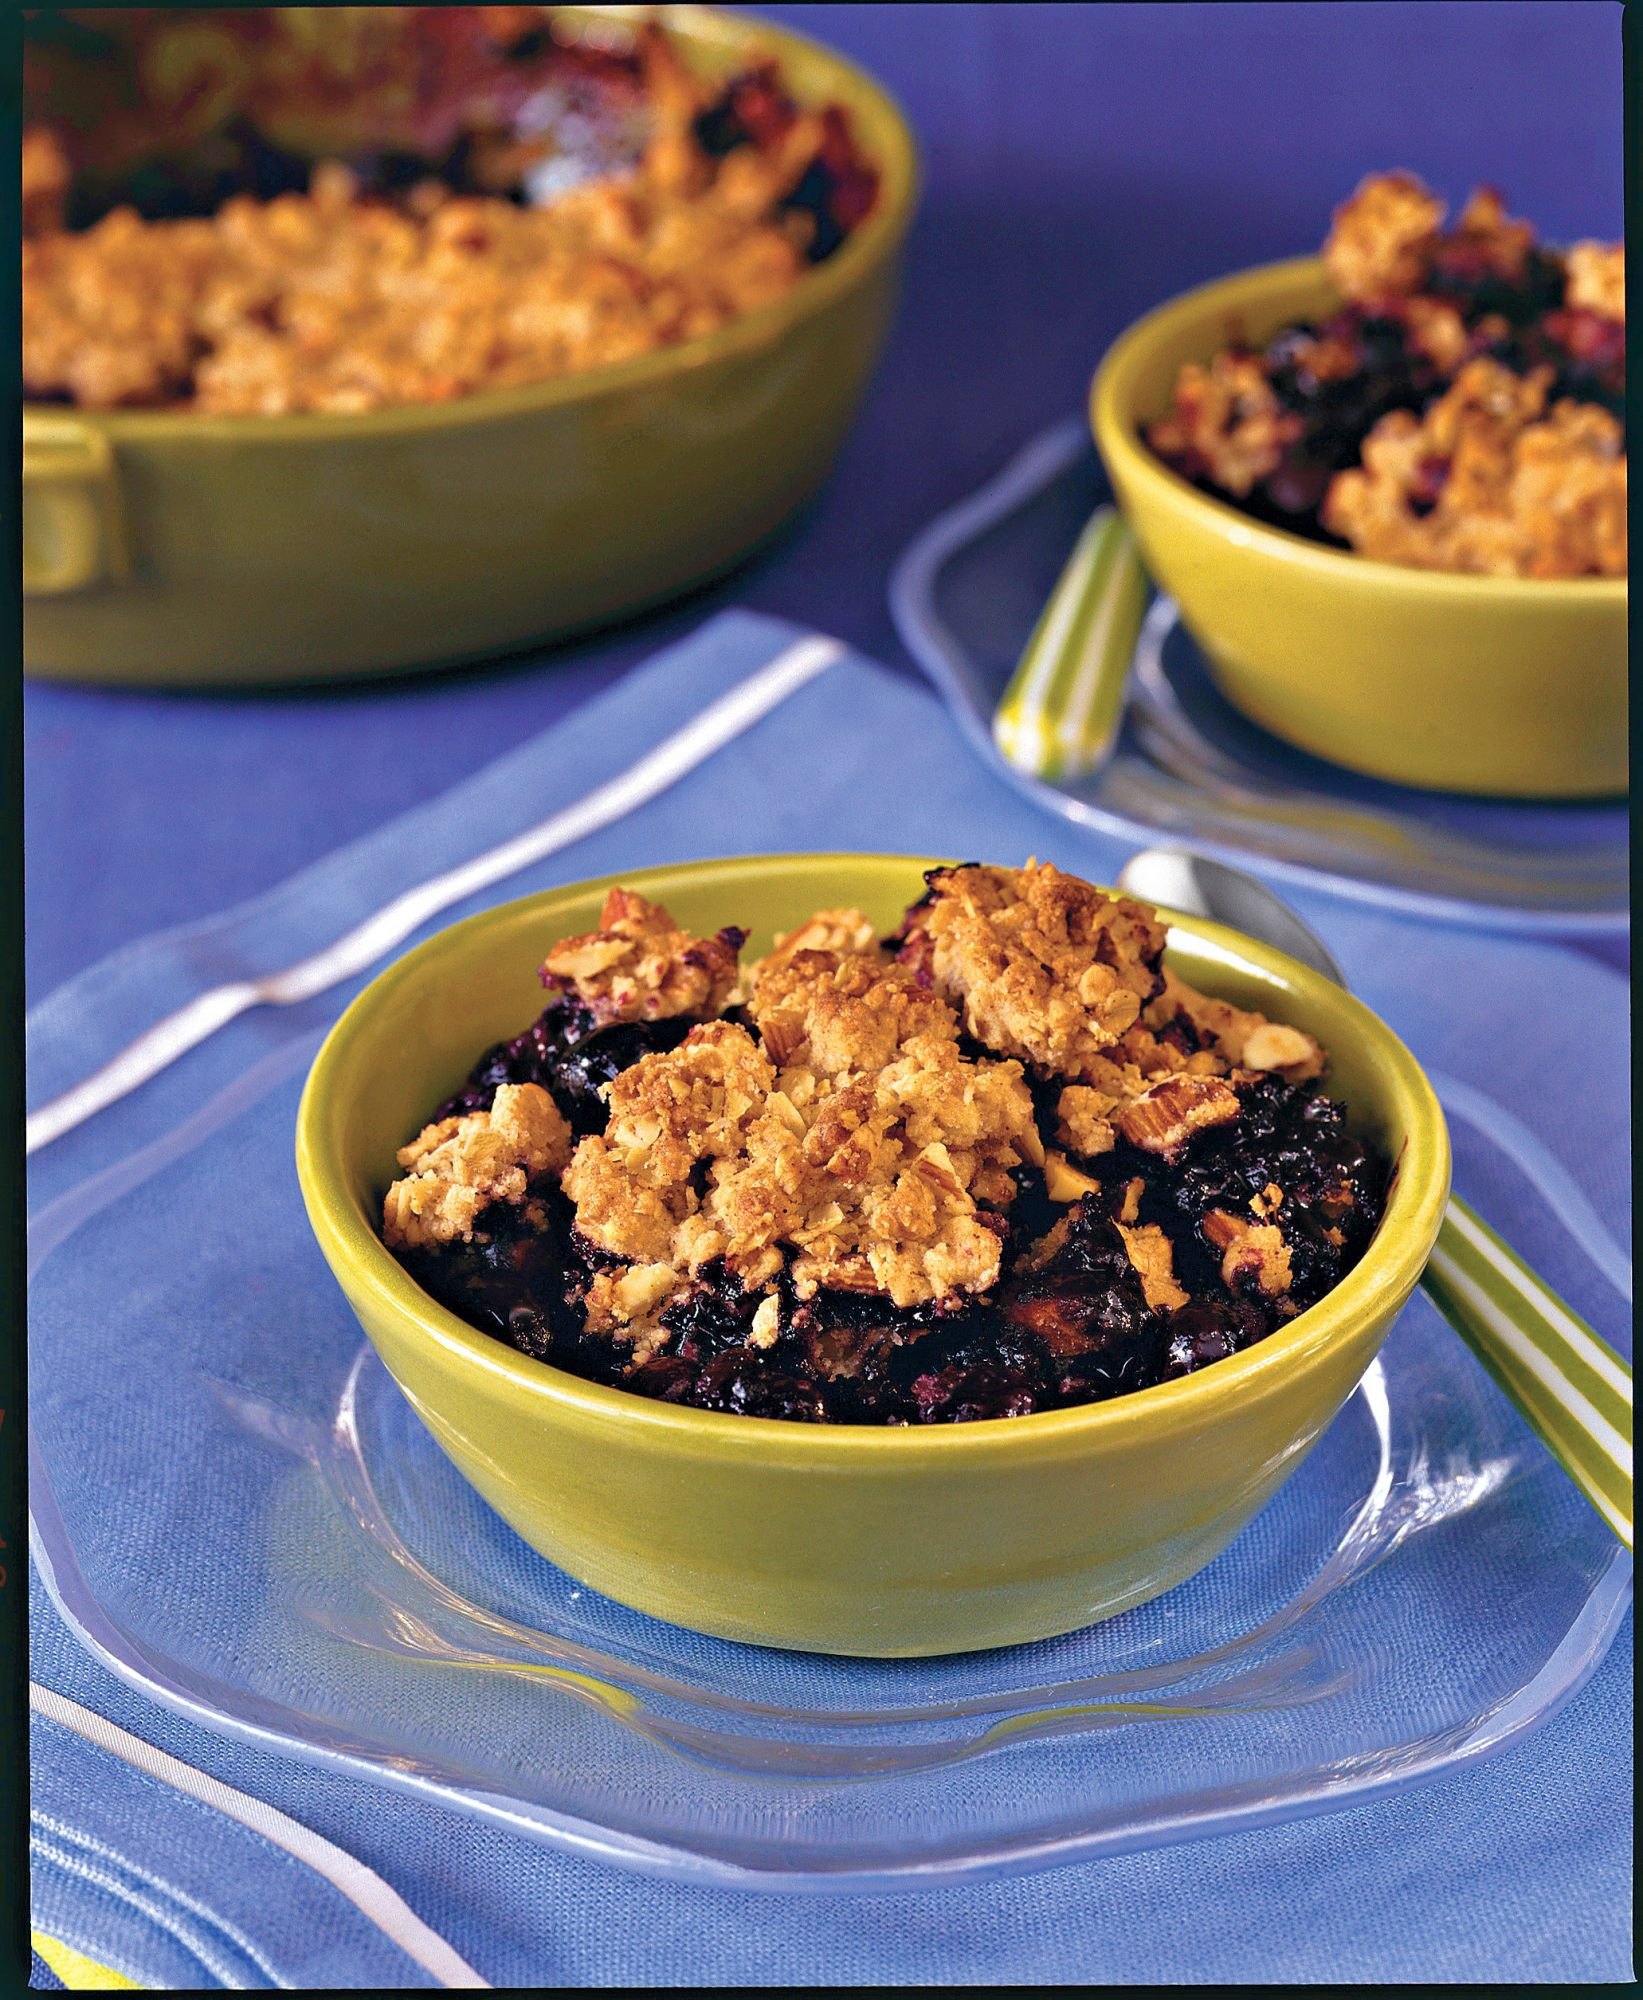 Healthy Desserts: Blueberry-Almond Cobbler